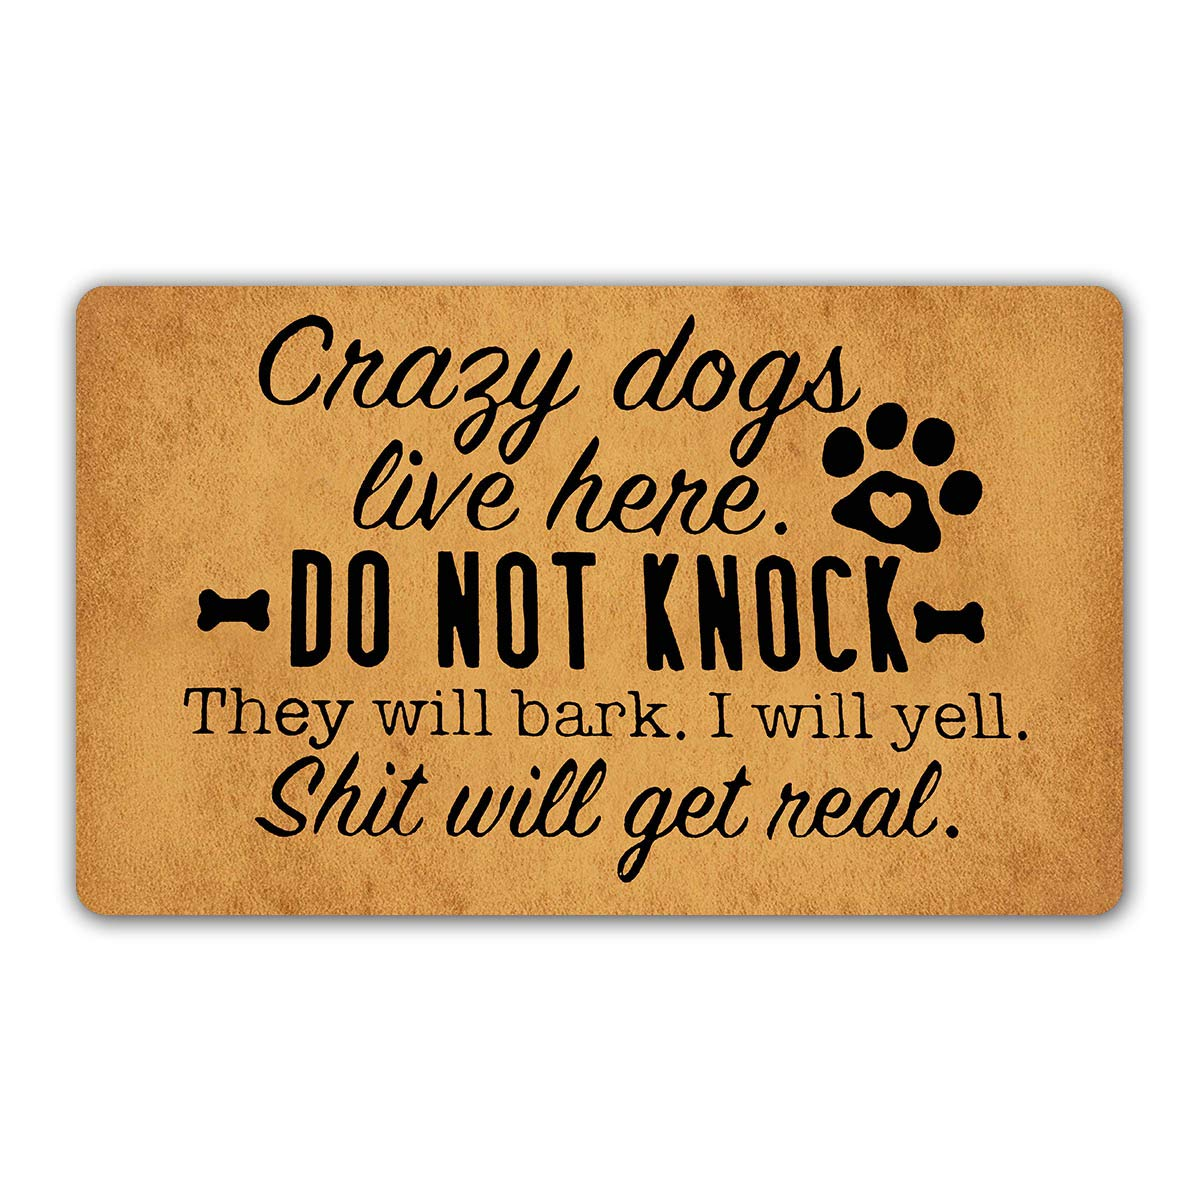 "DoubleJun Funny Doormat Crazy Dogs Live Here Do Not Knock They Will Bark Entrance Mat Floor Rug Indoor/Outdoor/Front Door Mats Home Decor Machine Washable Rubber Non Slip Backing 29.5""(W) X 17.7""(L)"